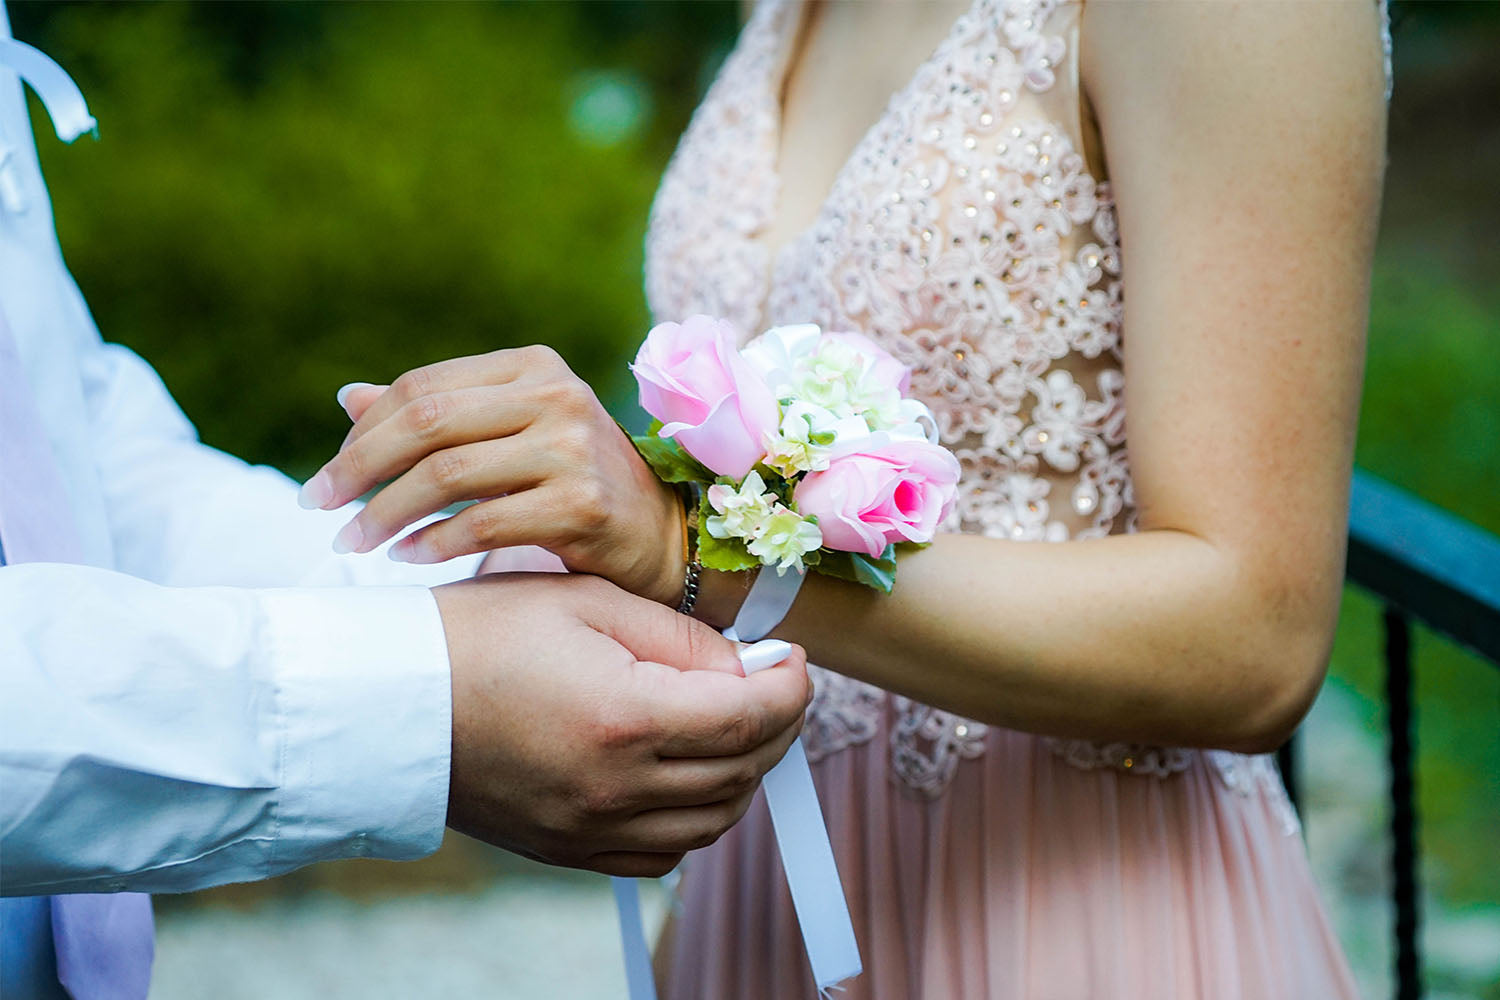 Five Tips to Help Your Teen Stay Safe on Prom Night